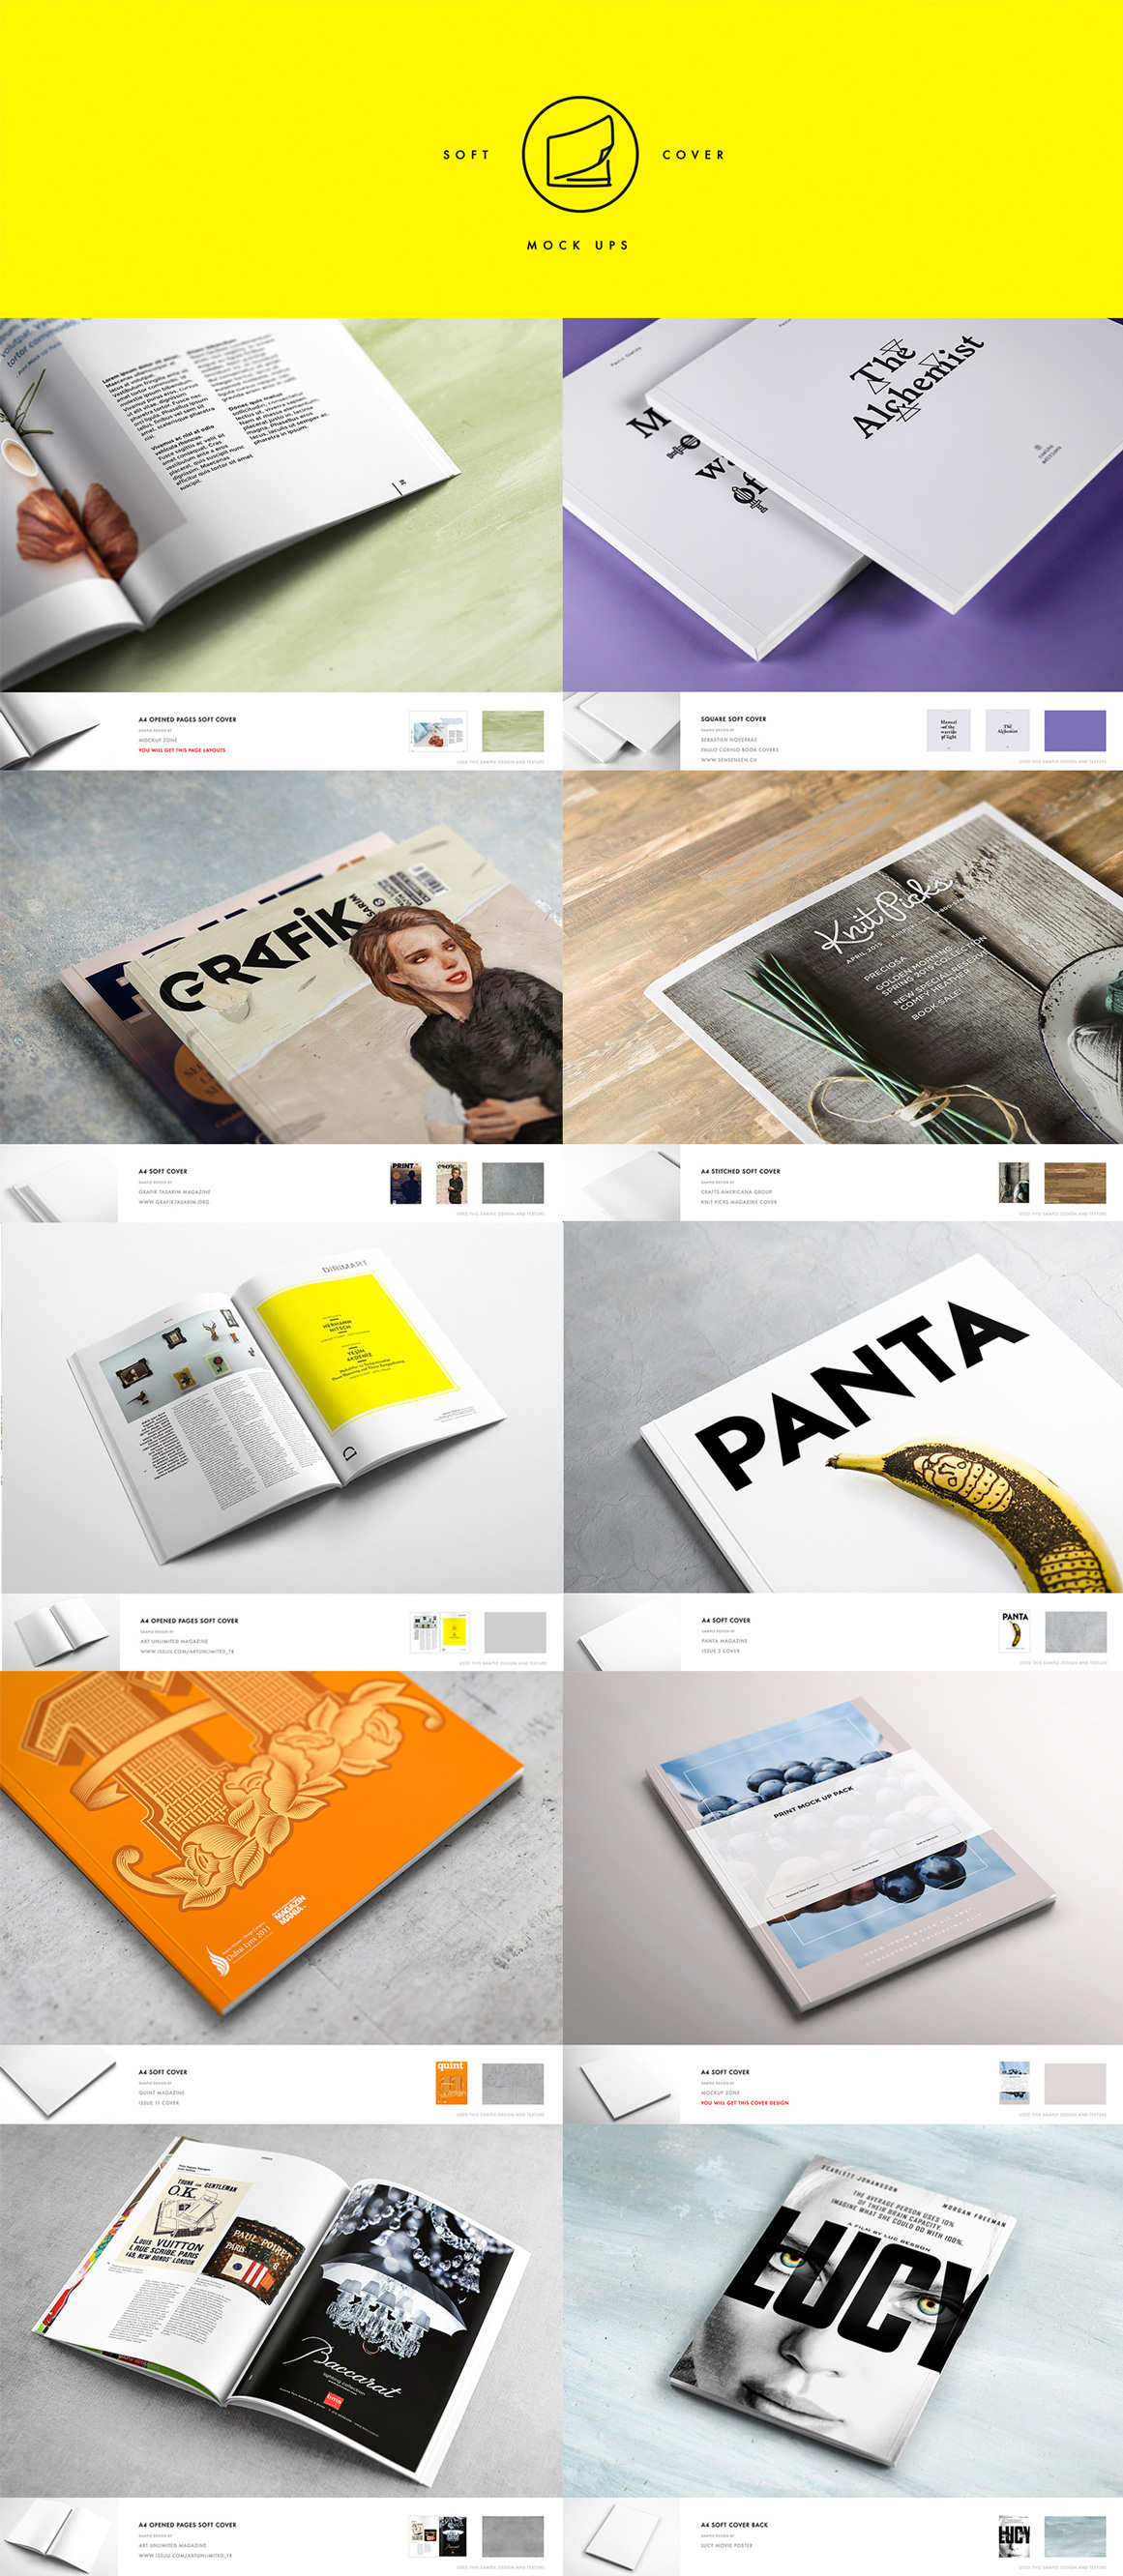 10 Different Soft Cover Book Mockups Vol 2 In Stationery Mockups